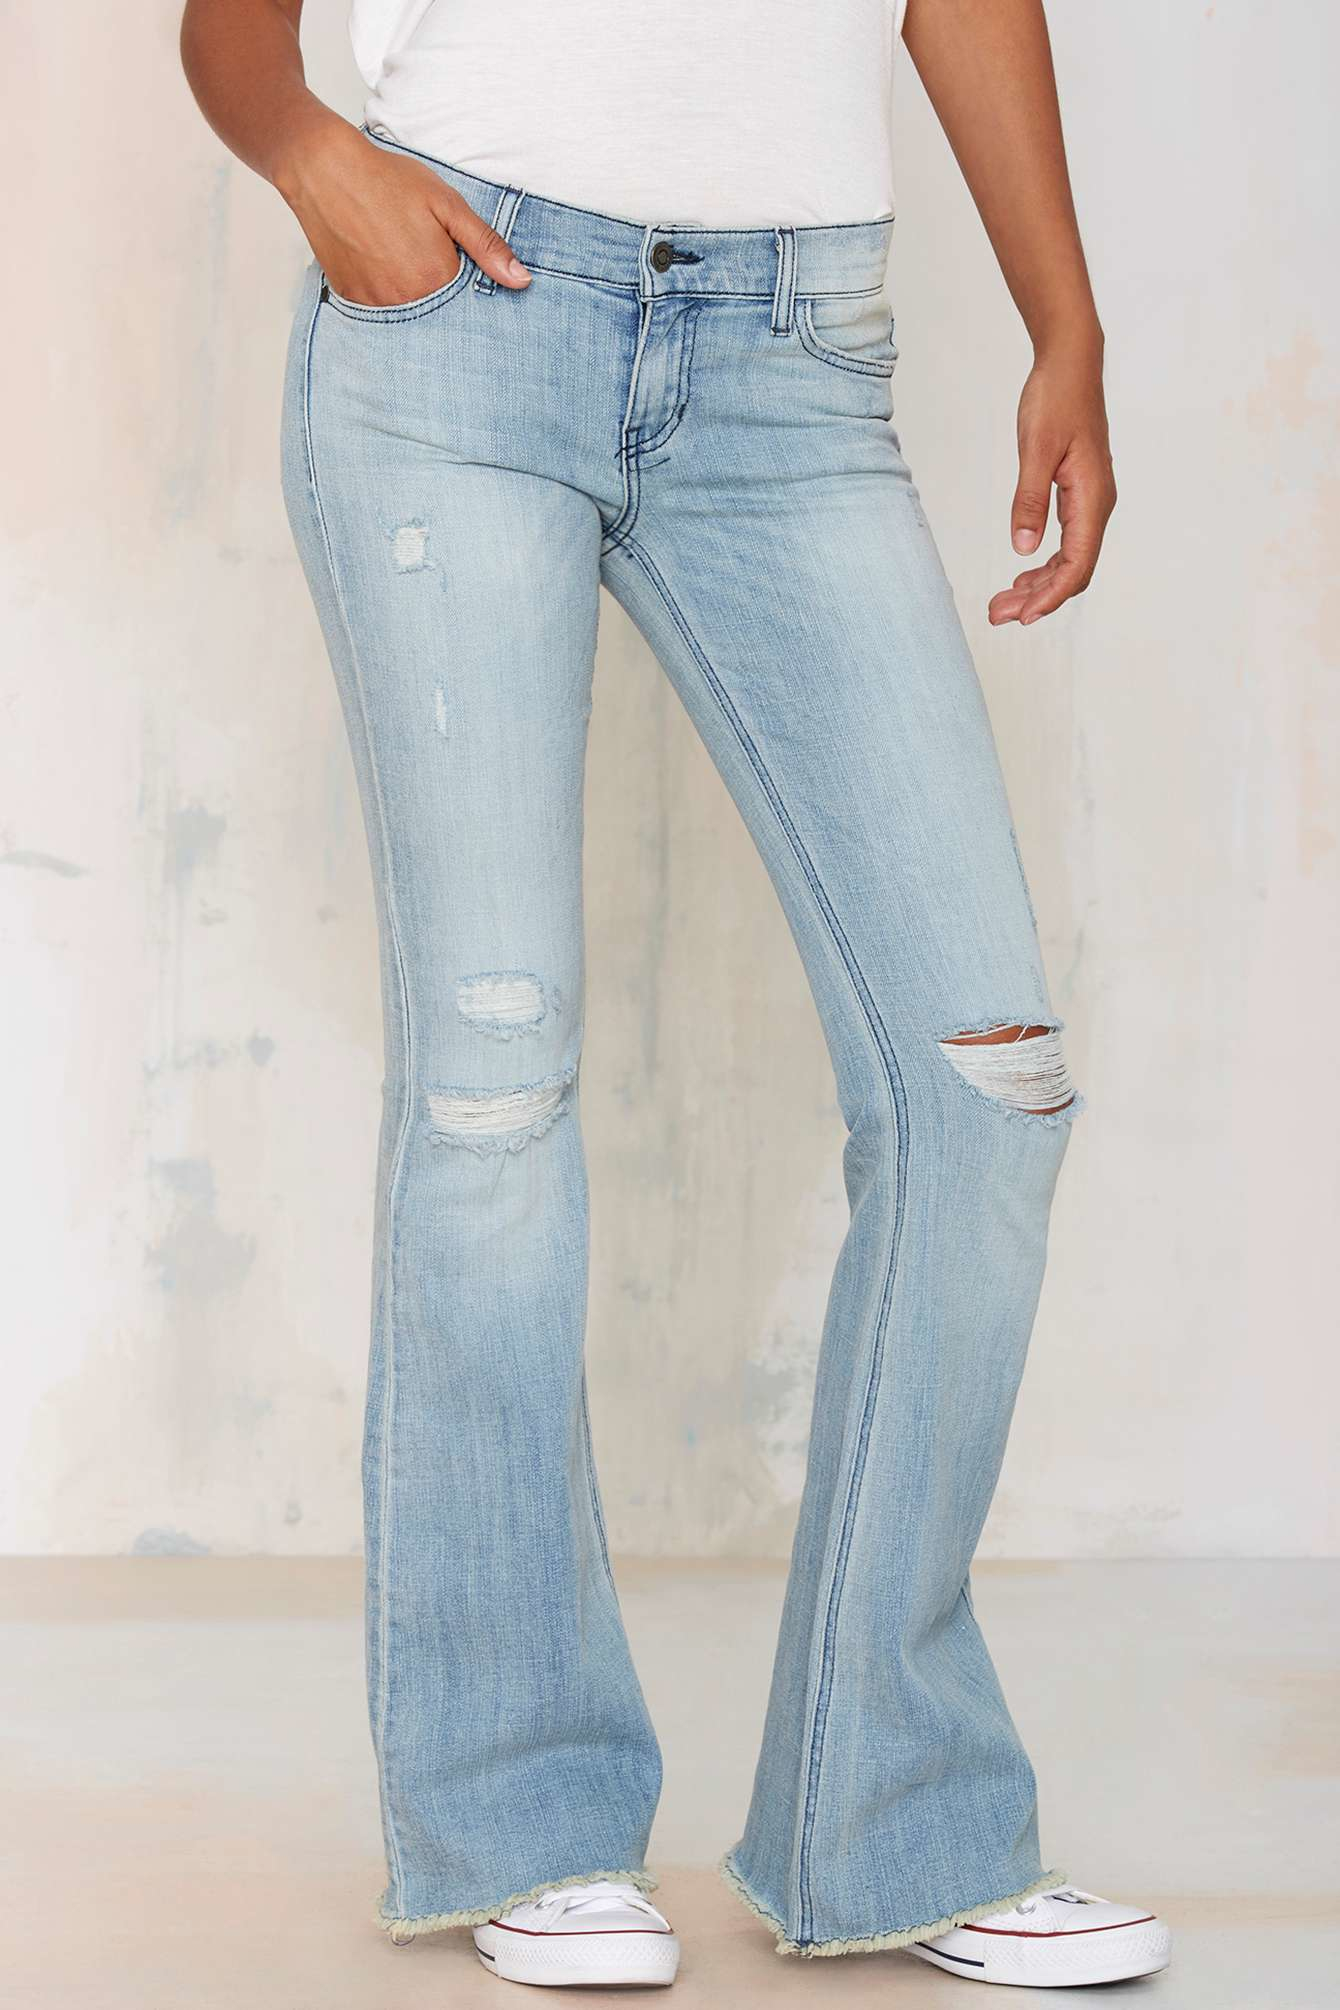 Nasty gal Stevie Flare Jeans - Light Wash in Blue | Lyst